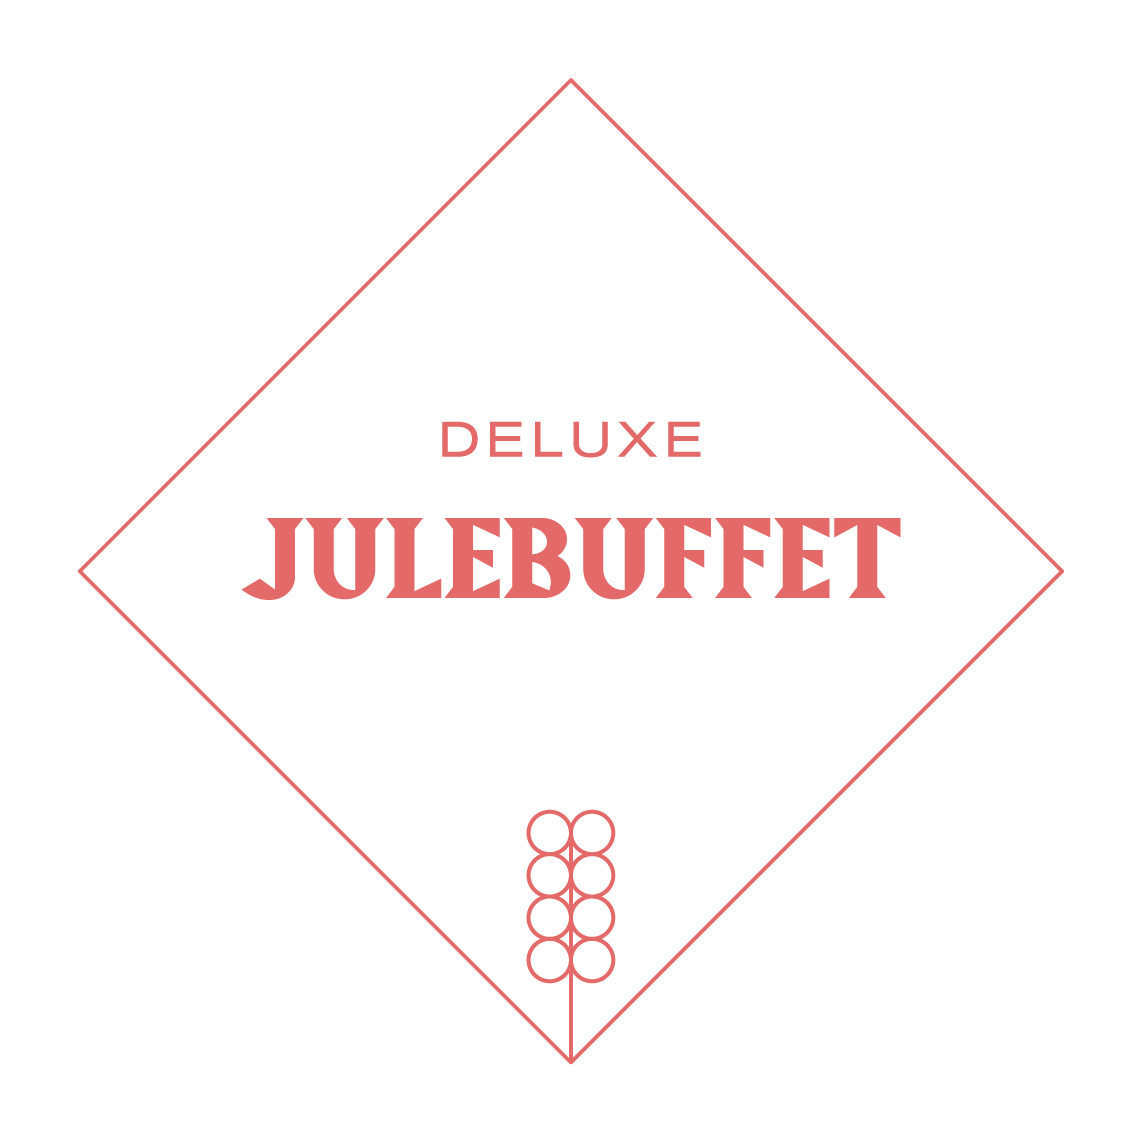 Meny-Julebuffet-Deluxe.png